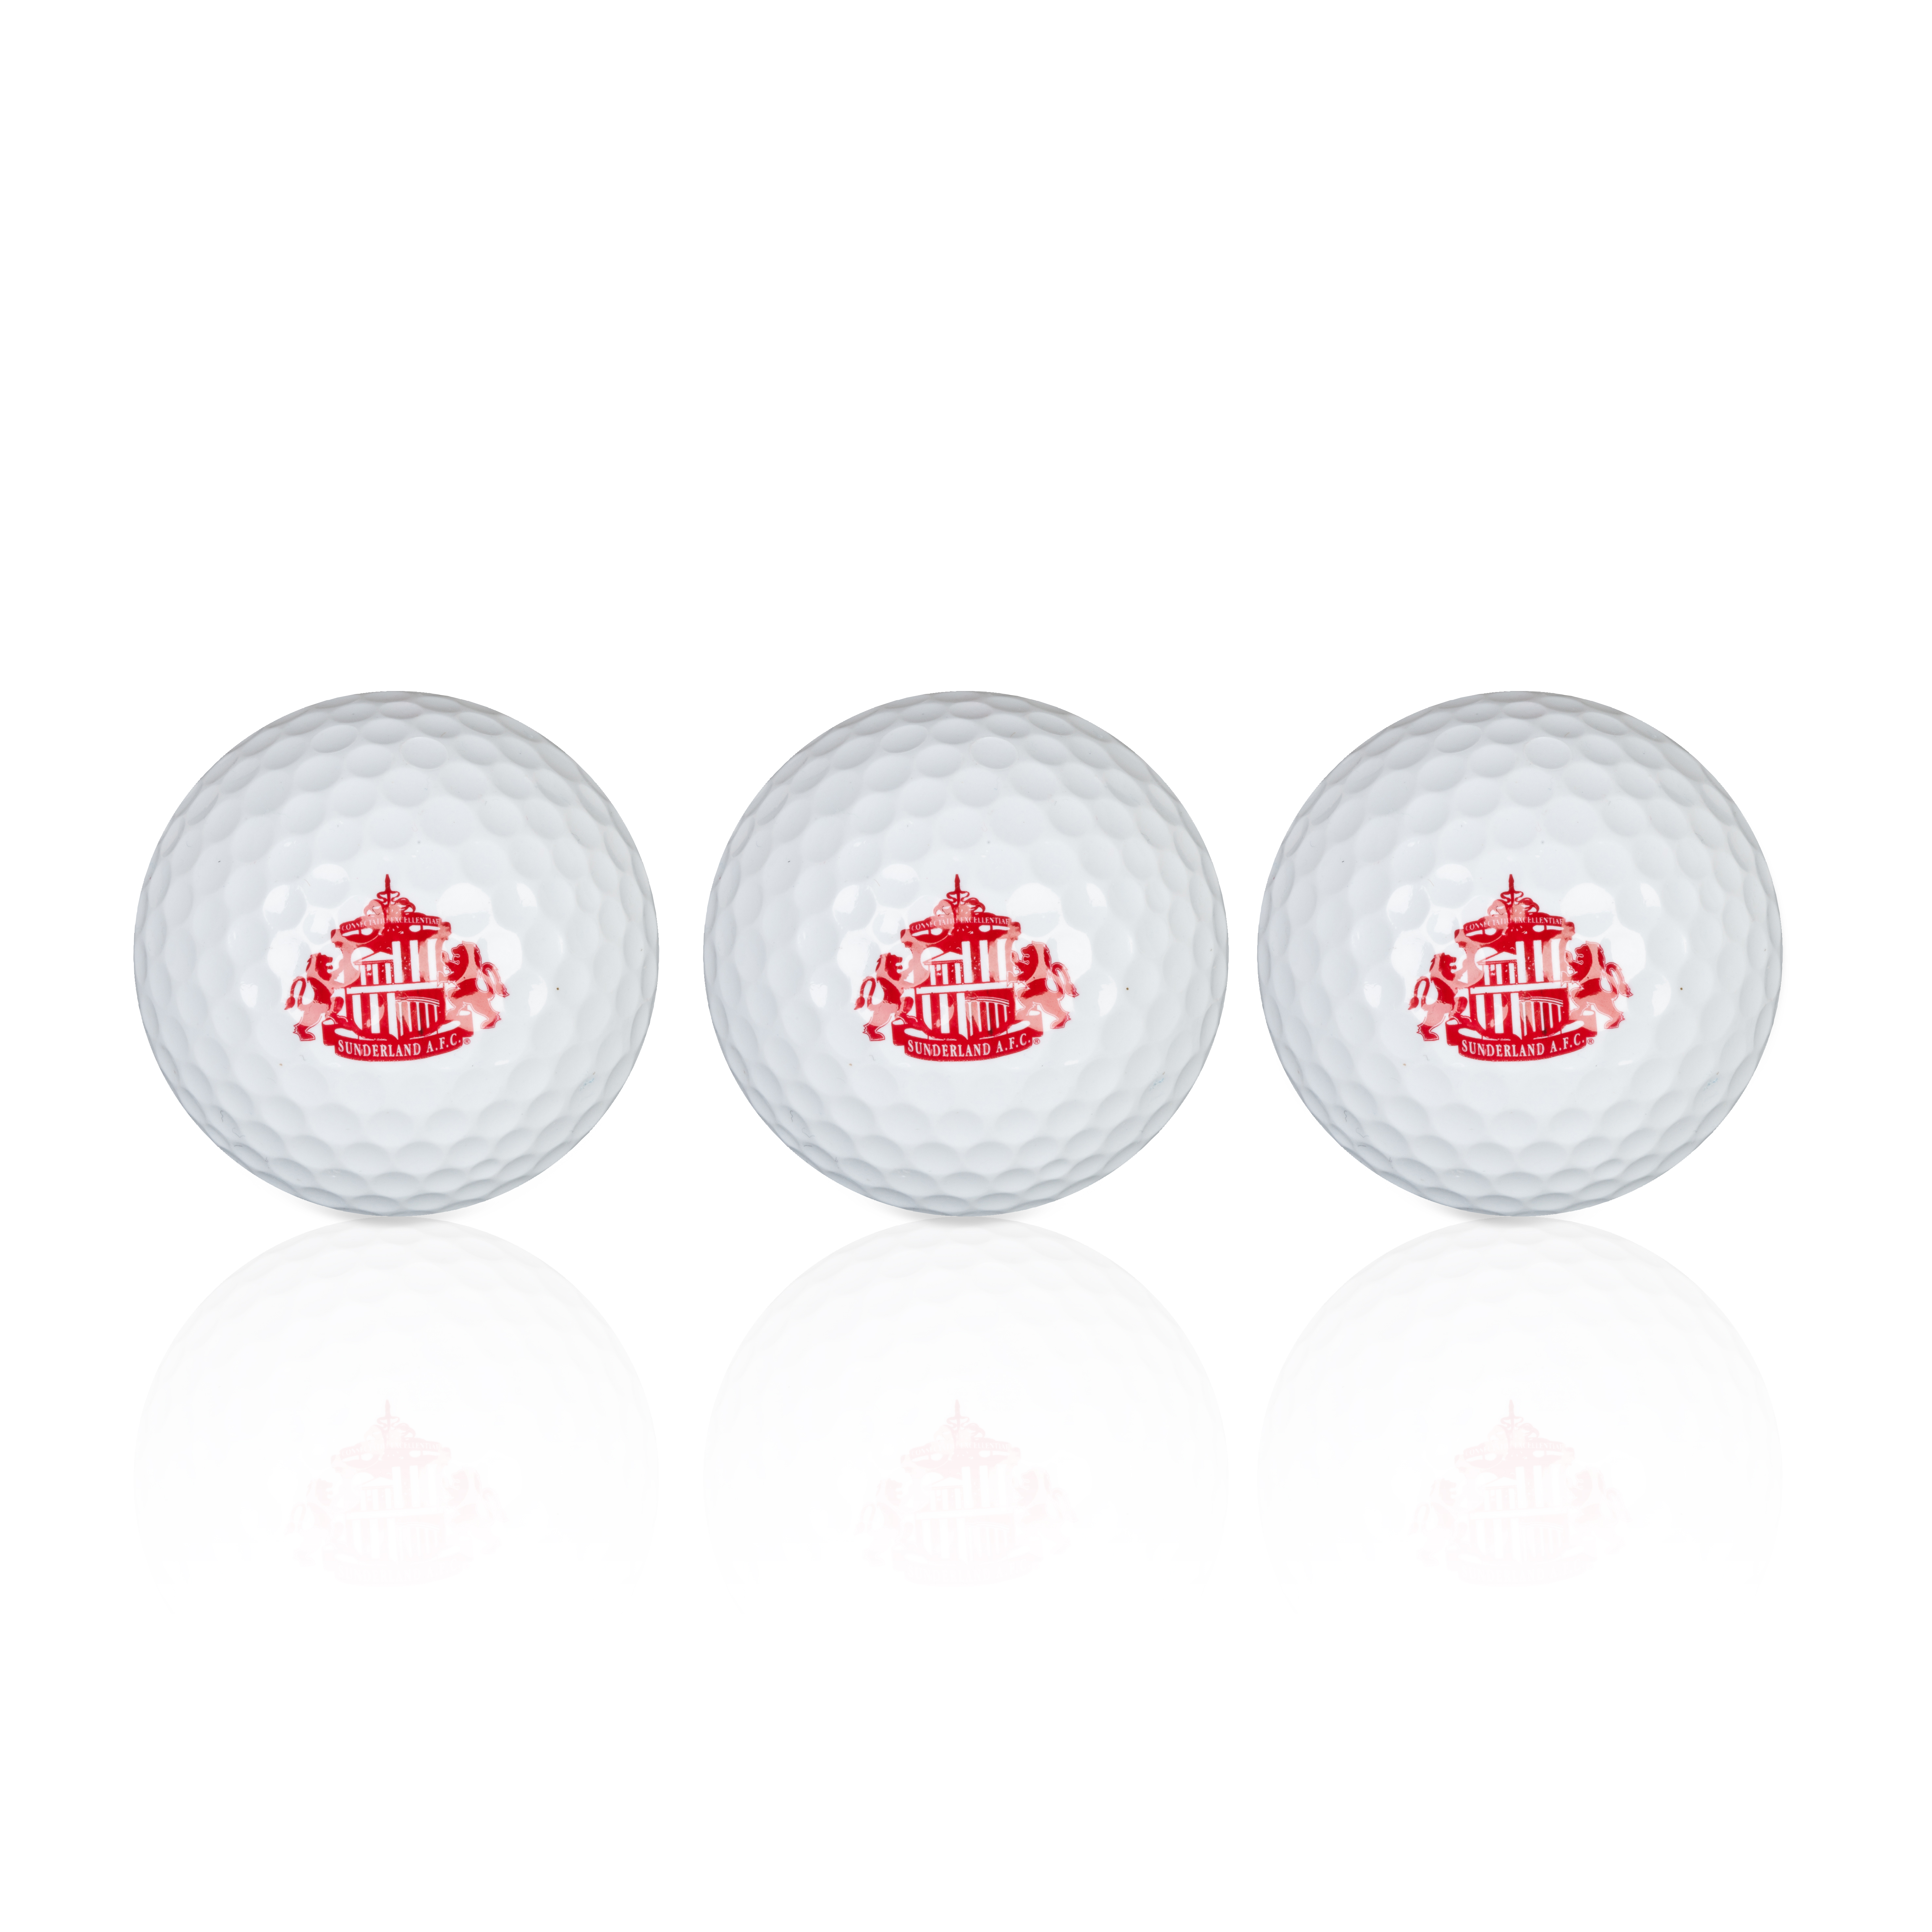 Sunderland Executive Golf Balls 3 Pack